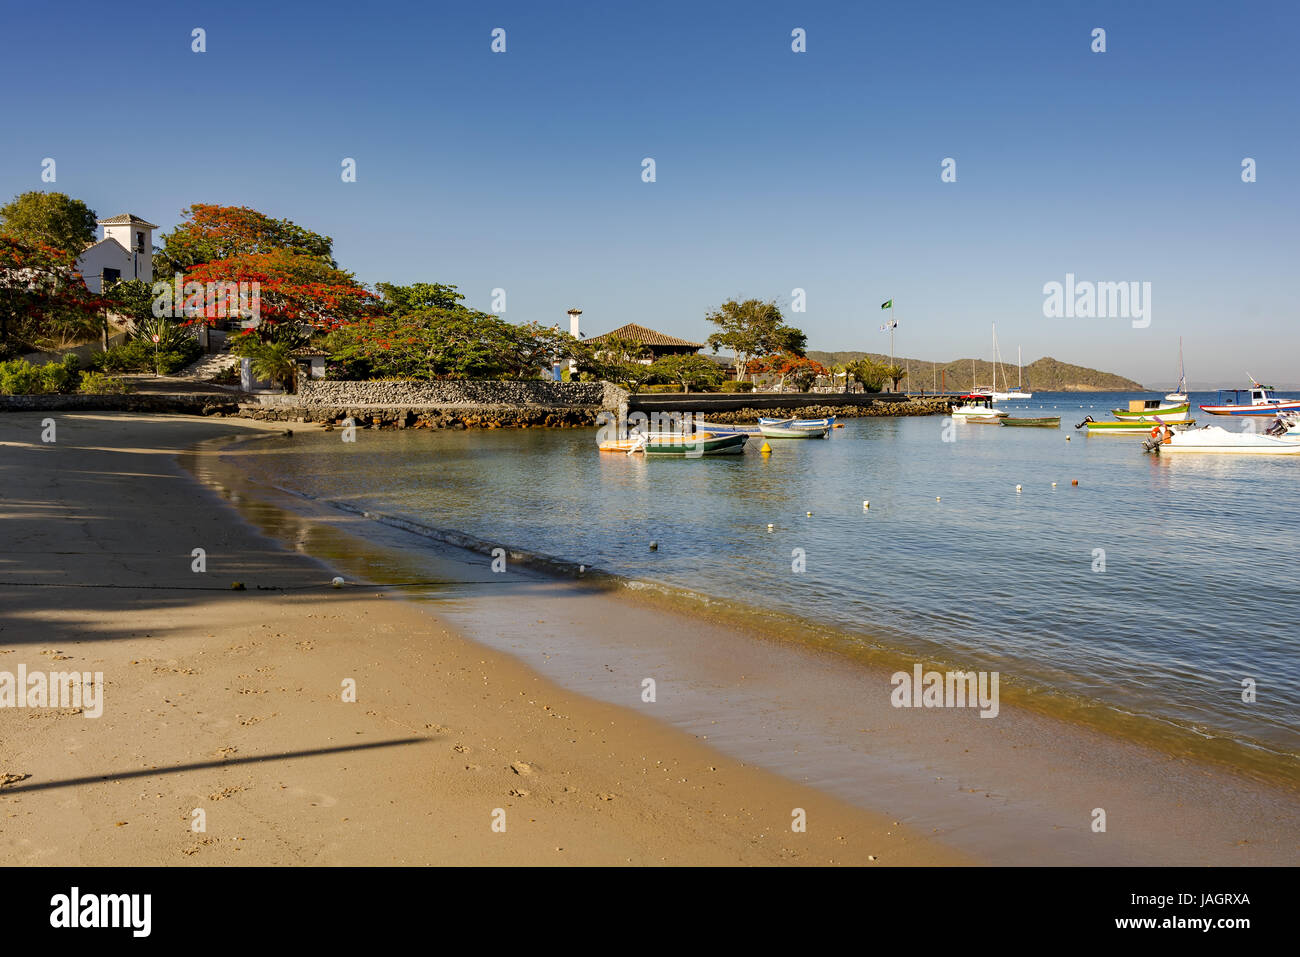 Bones Beach, one of the leading and most well-known located in the city center of Buzios - Stock Image